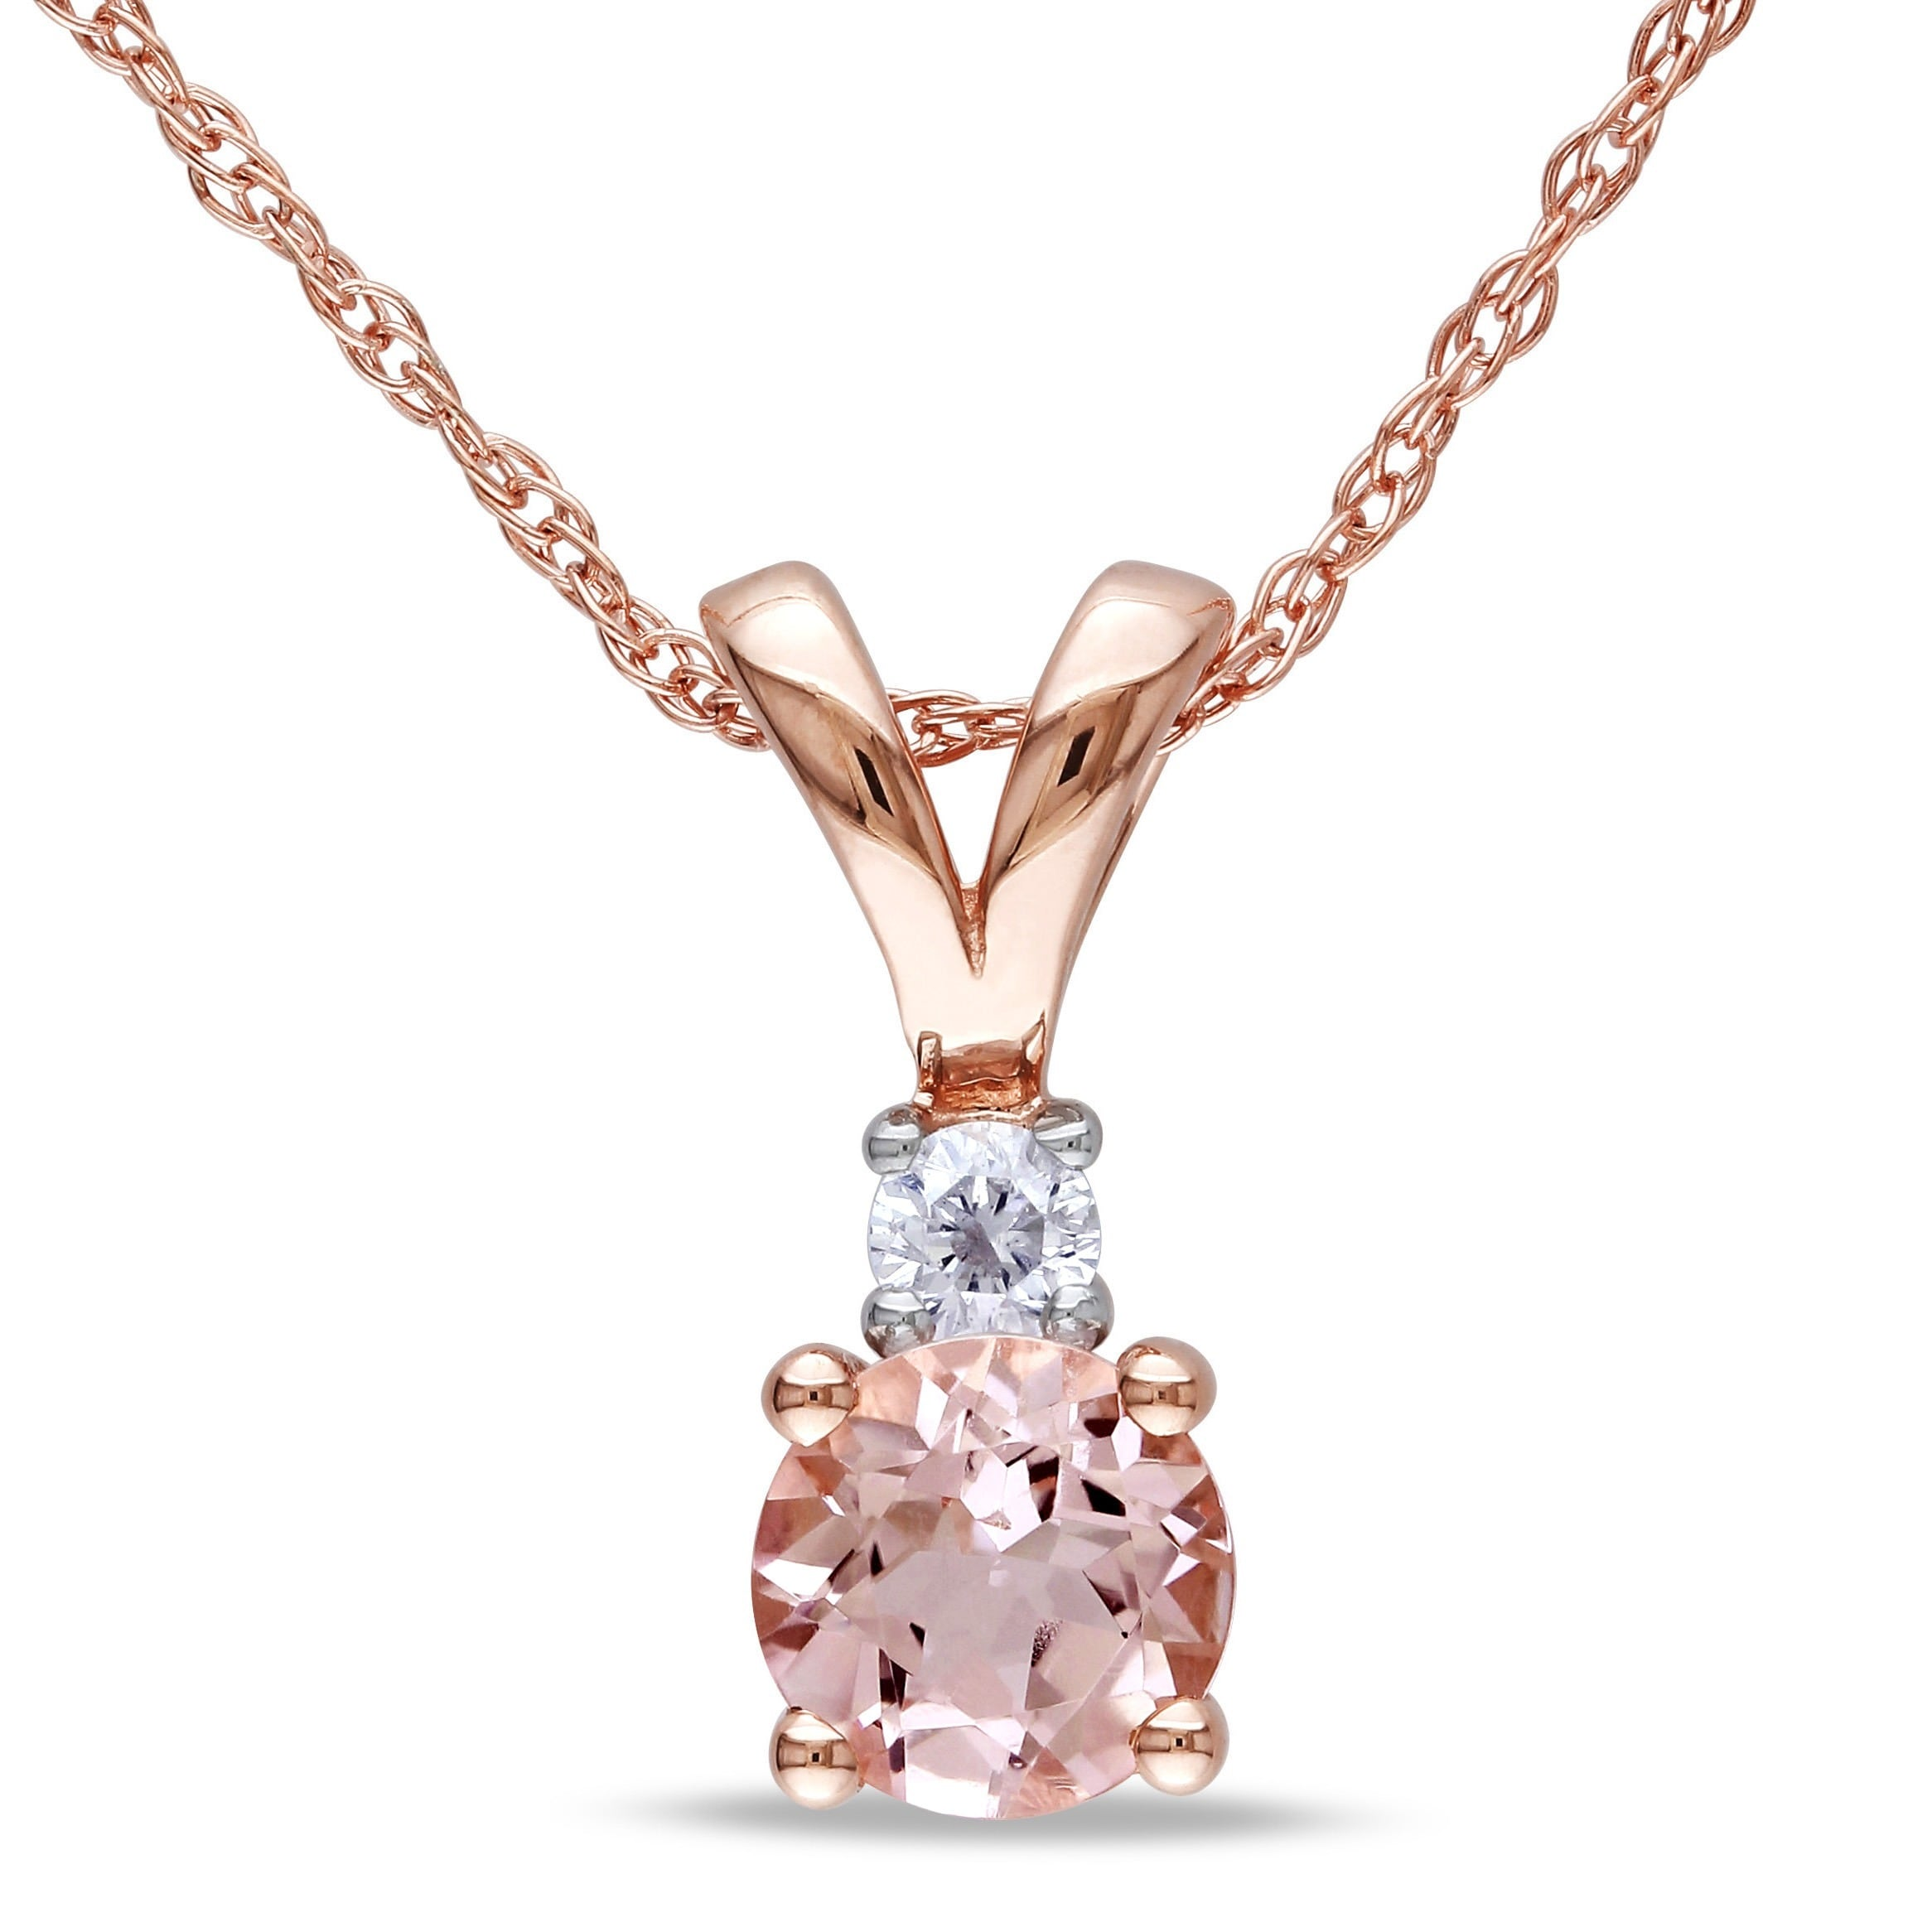 primary at morganite master pendant necklaces id frederic carat jewelry new diamond for watch necklace onyx j sale sage